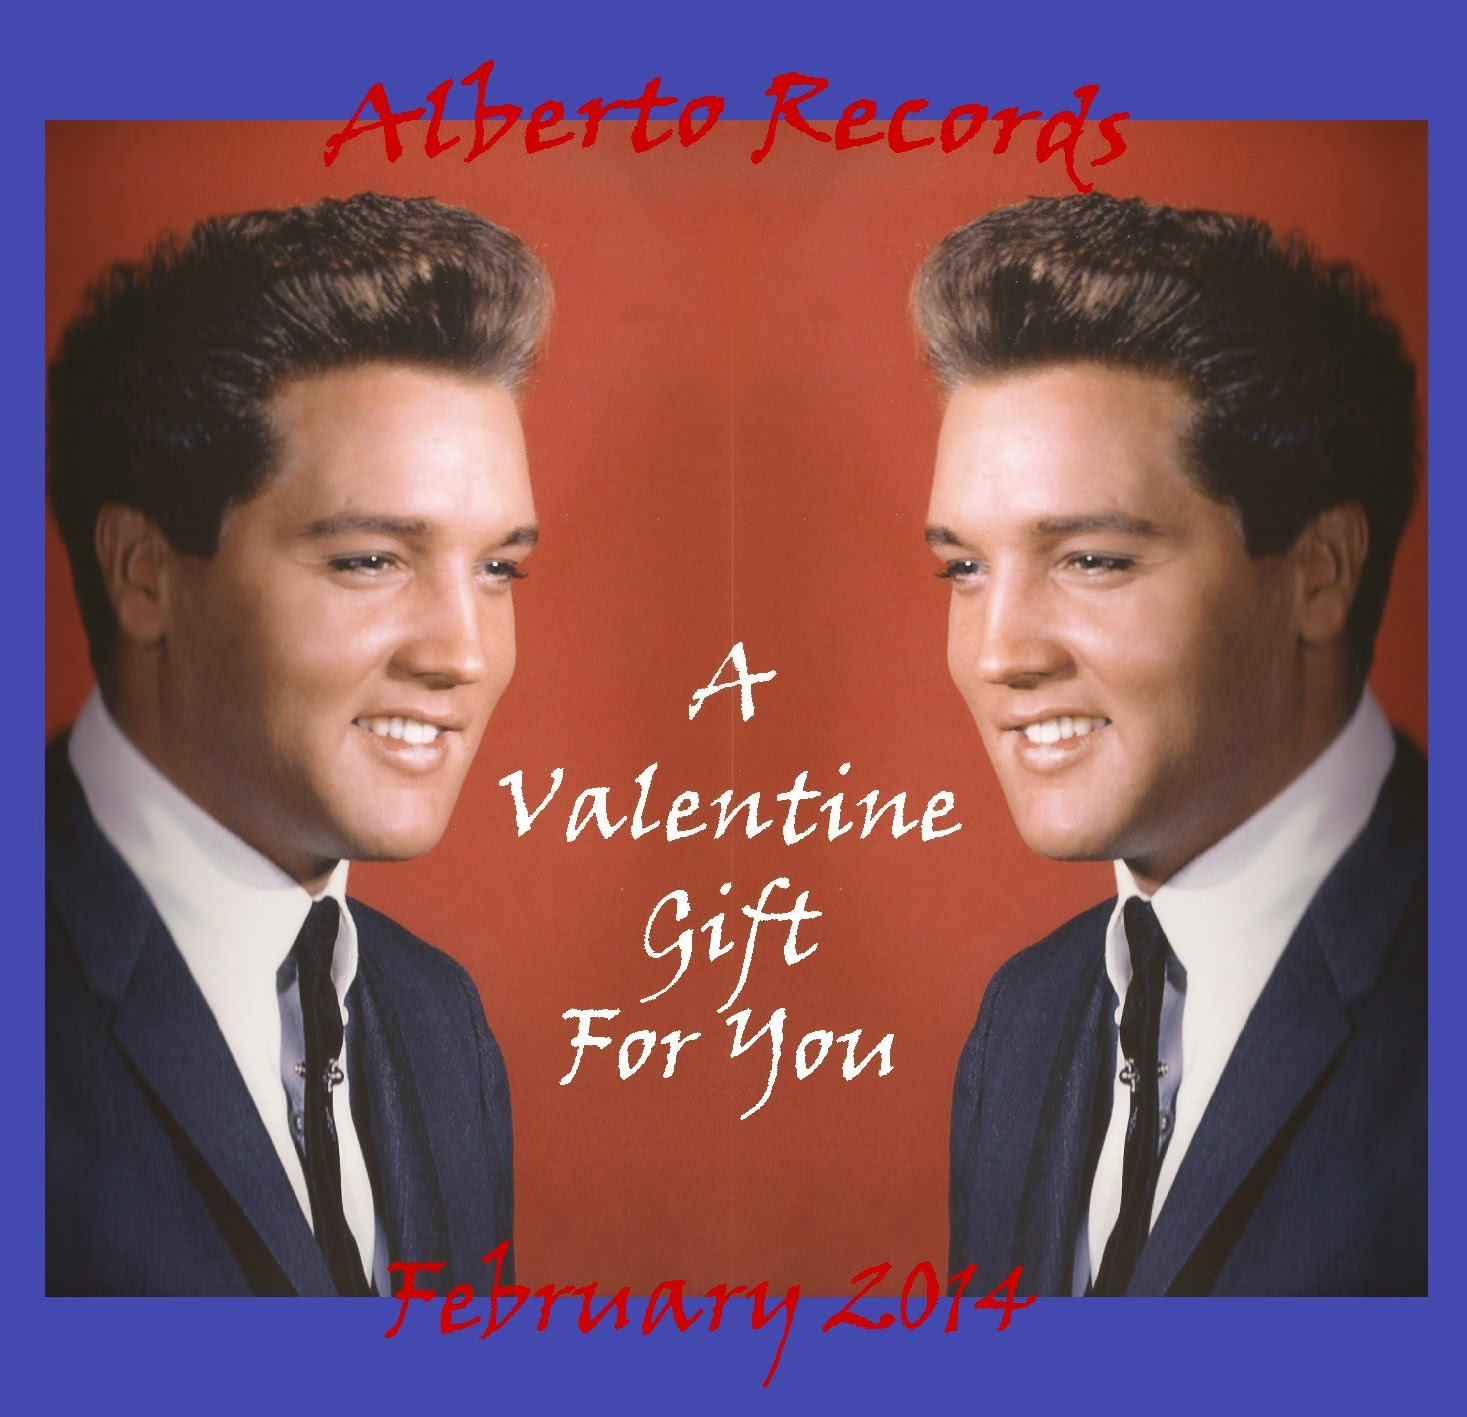 A Valentine Gift For You (February 2014)